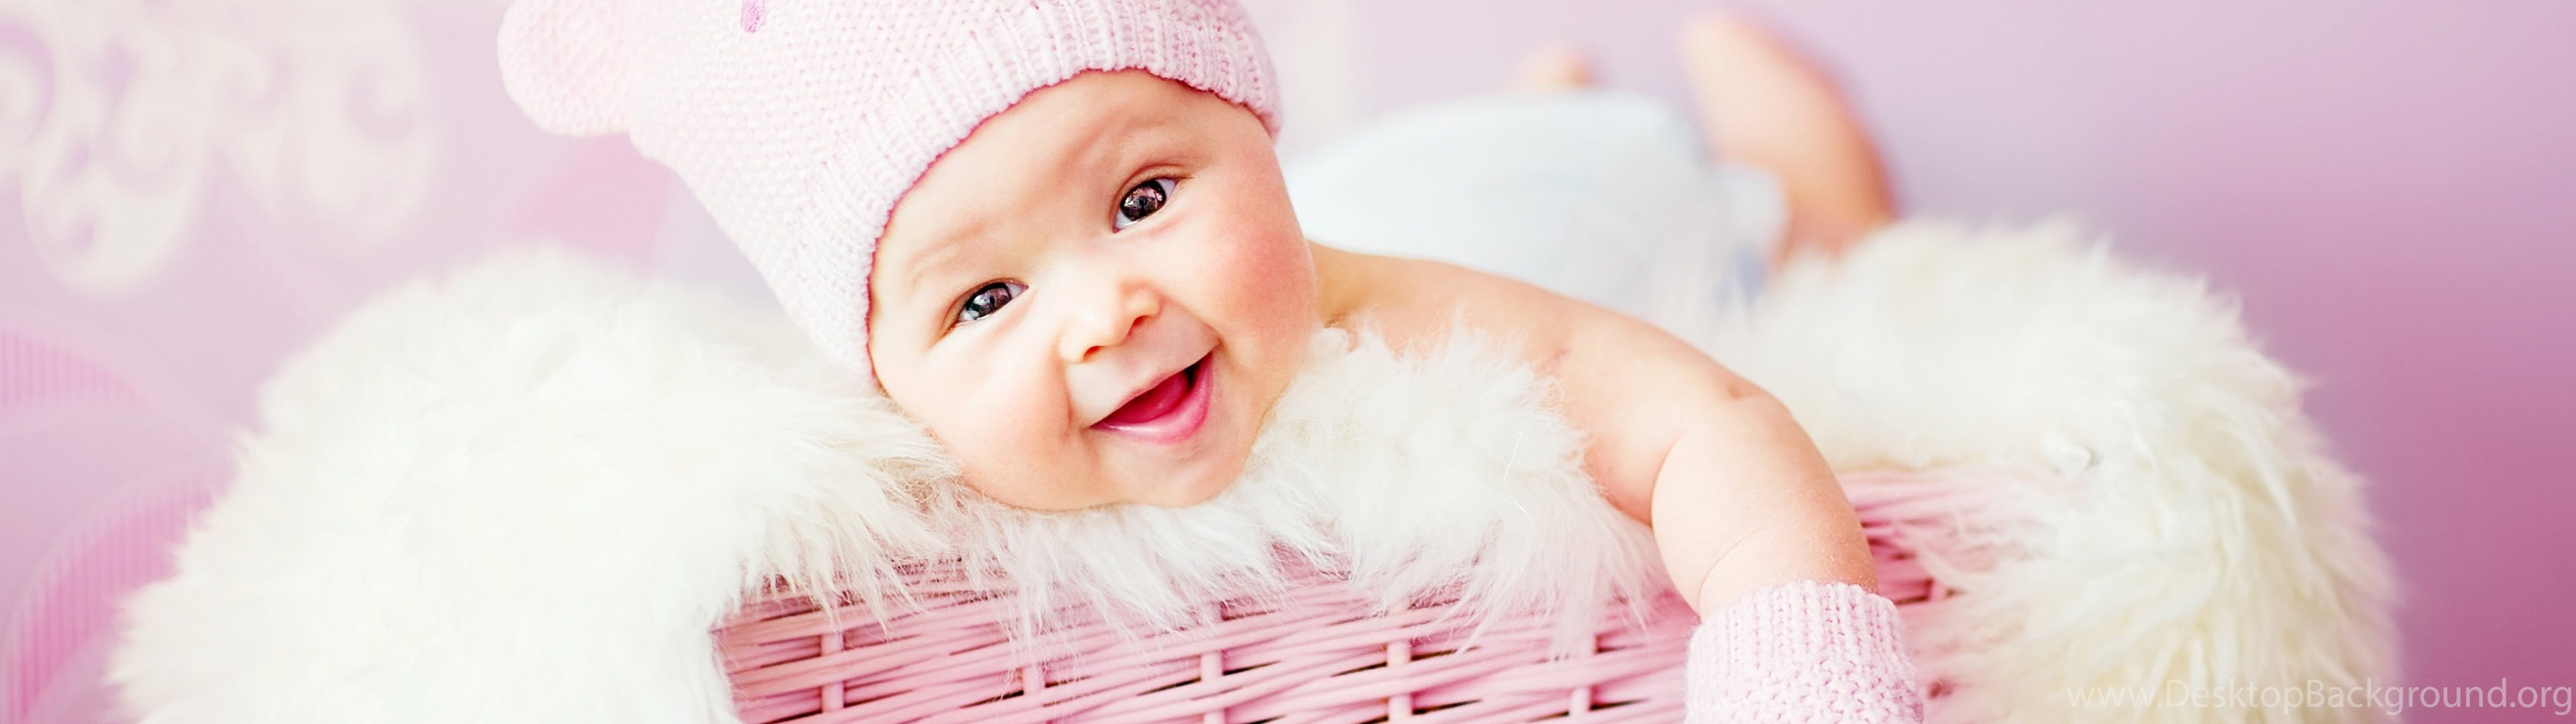 cute baby pic collection (43+) desktop background